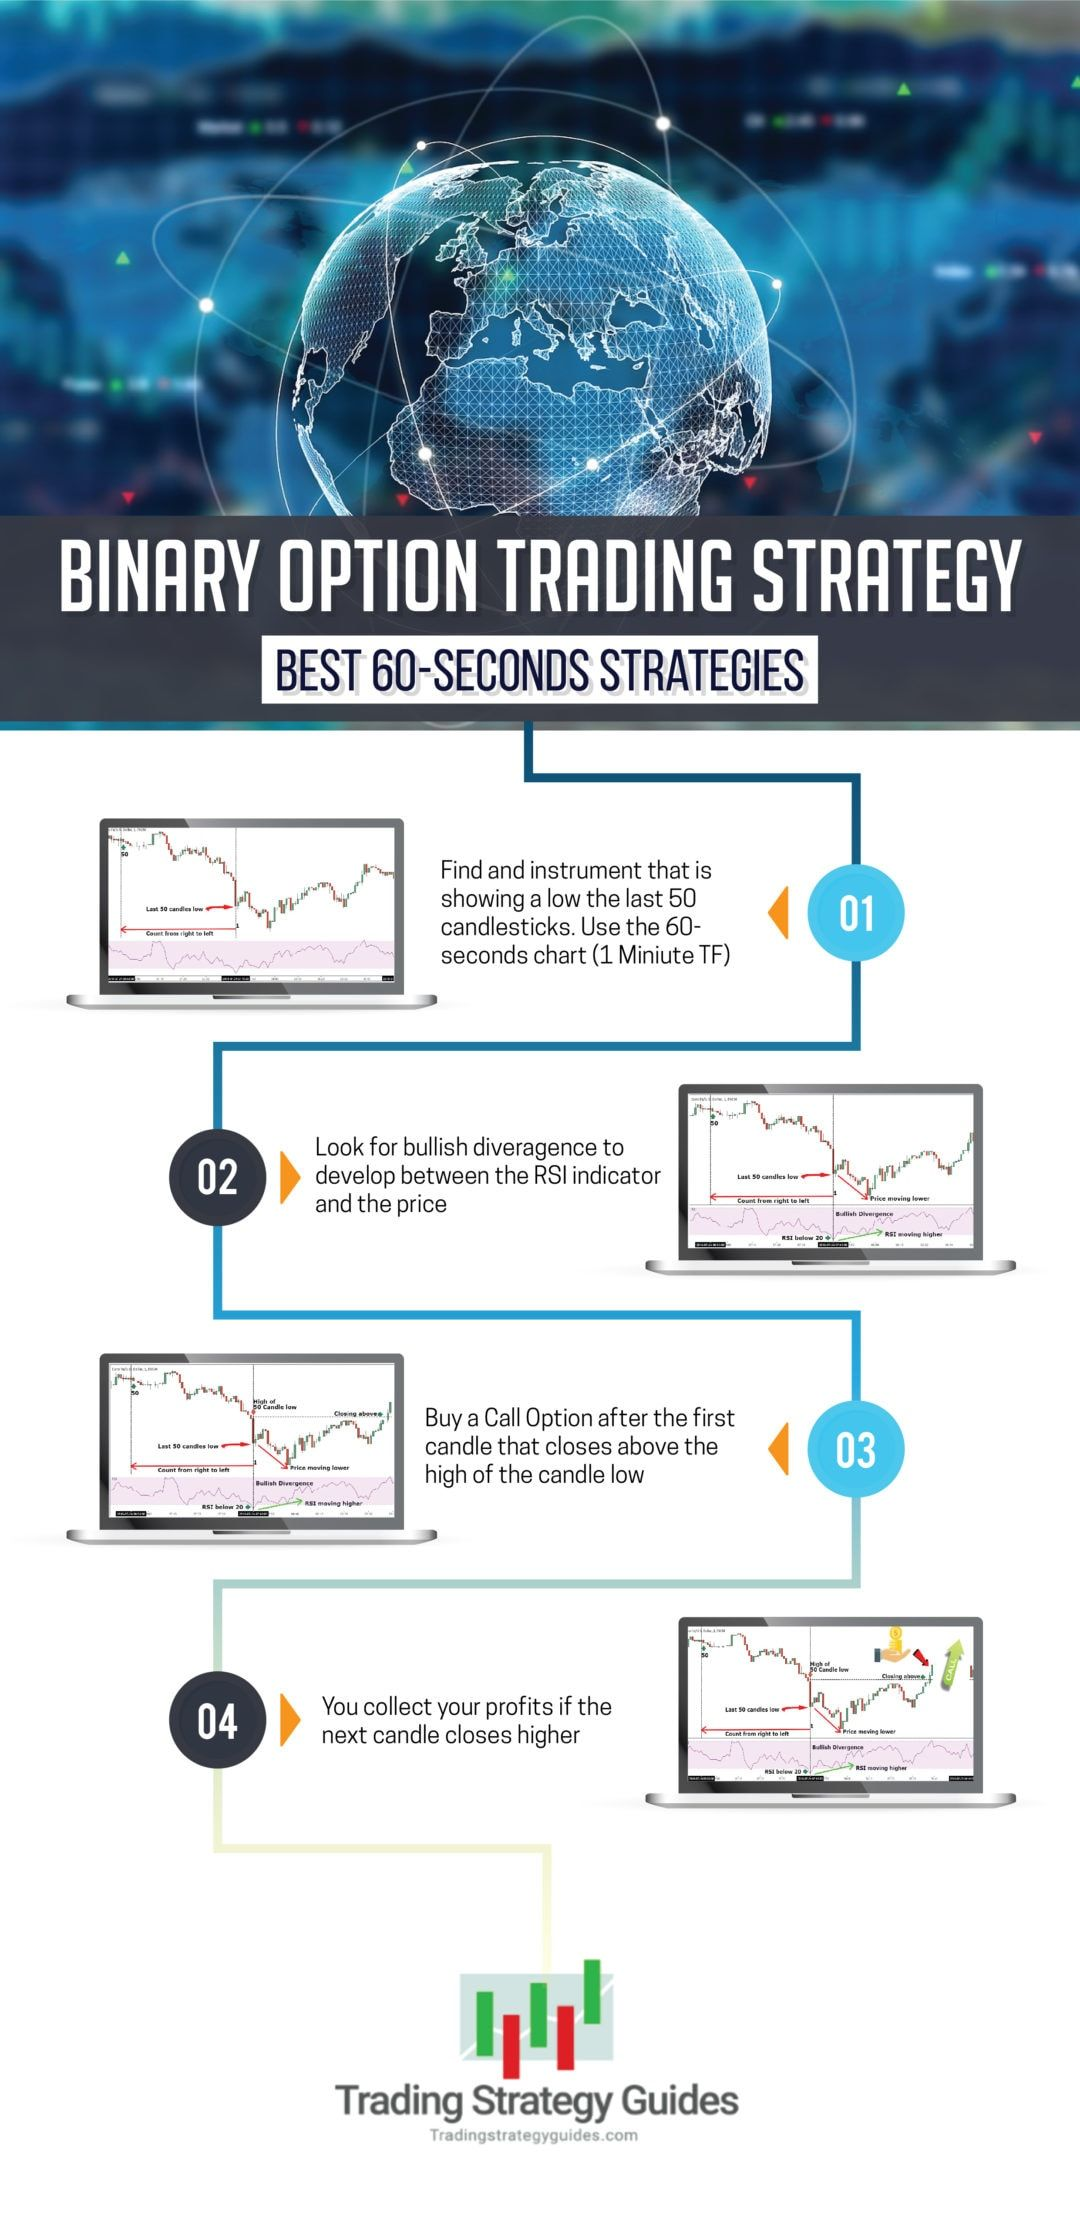 Pin By Mona Sintia On Personal Interest Trading Info Options